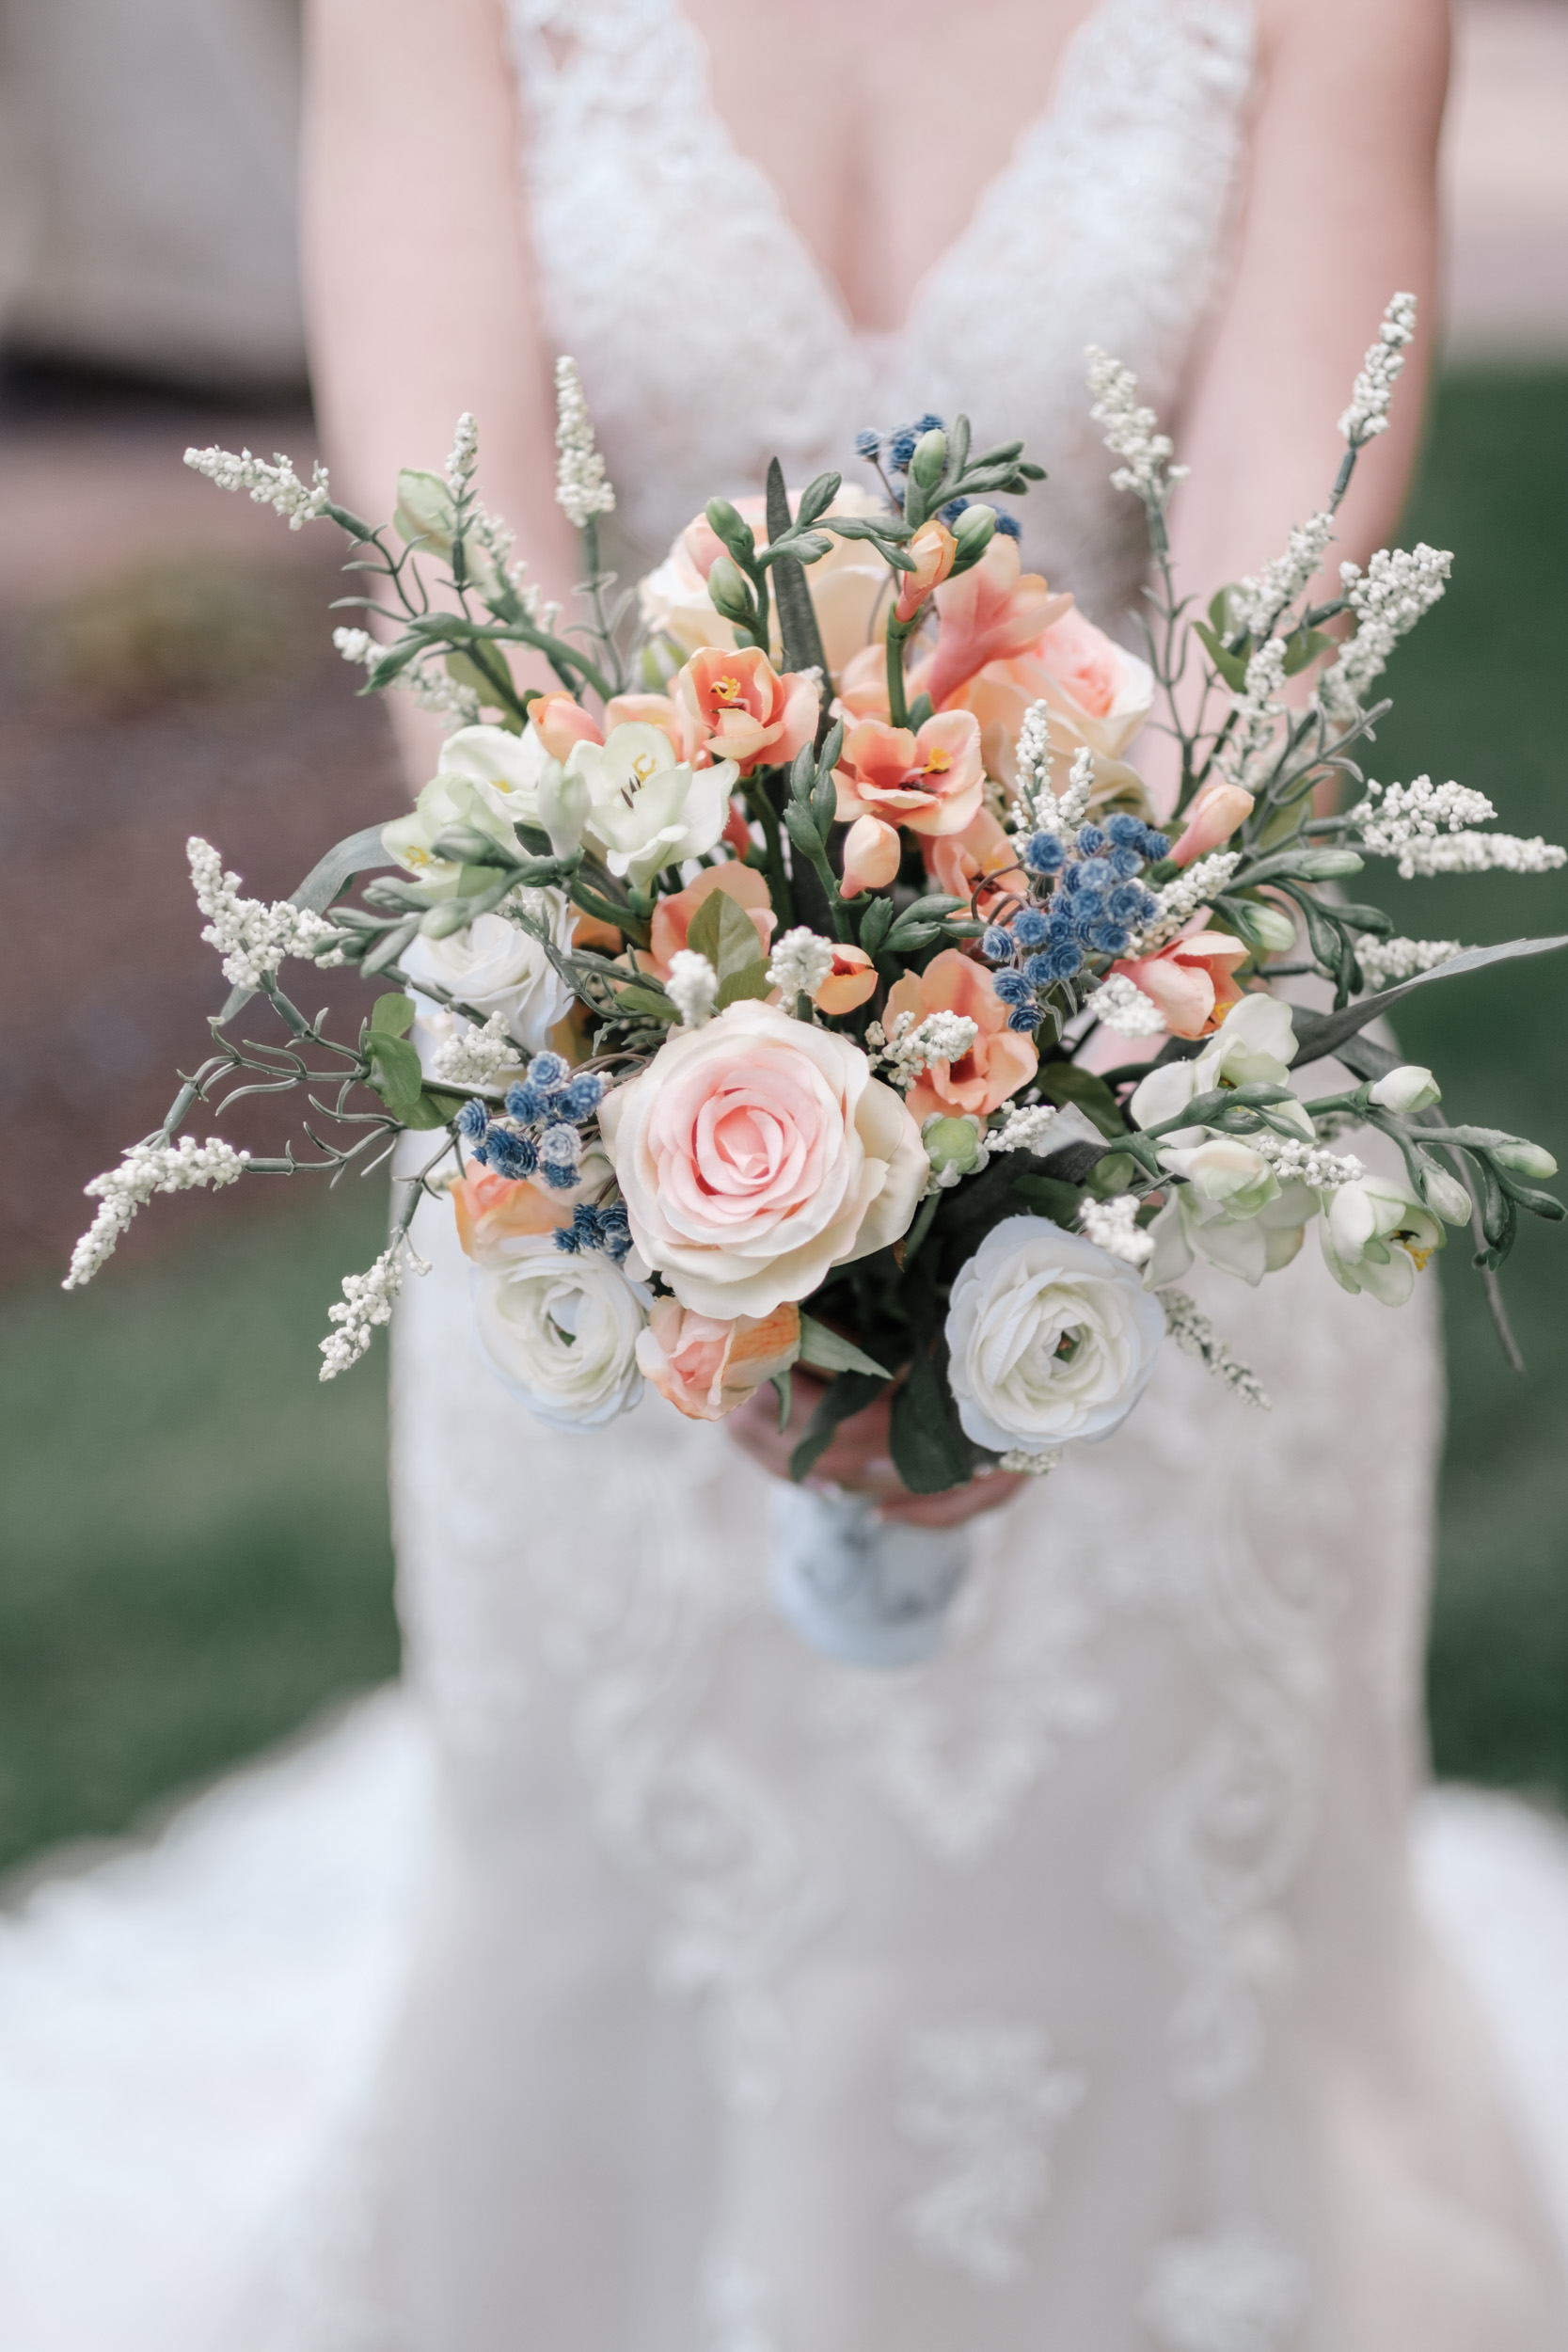 detail photo of wedding day flowers of bride outdoor